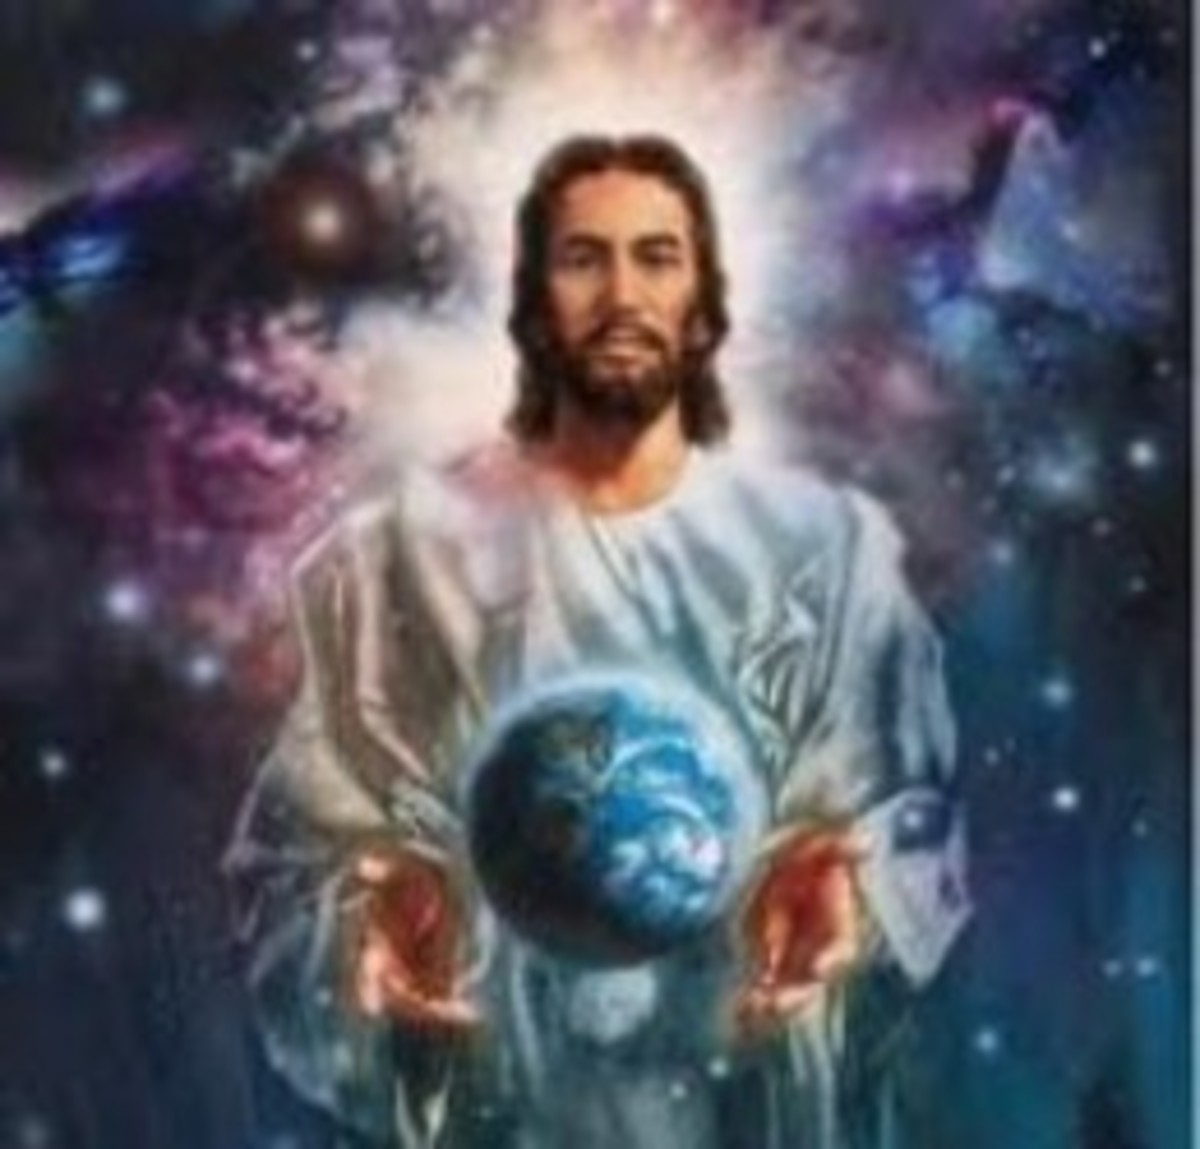 This is one of the many photos that represents our Lord Jesus Christ, who has been the greatest man that ever lived on earth and the greatest commandment for all humanity was; love your Lord God and thy neighbour as yourself.